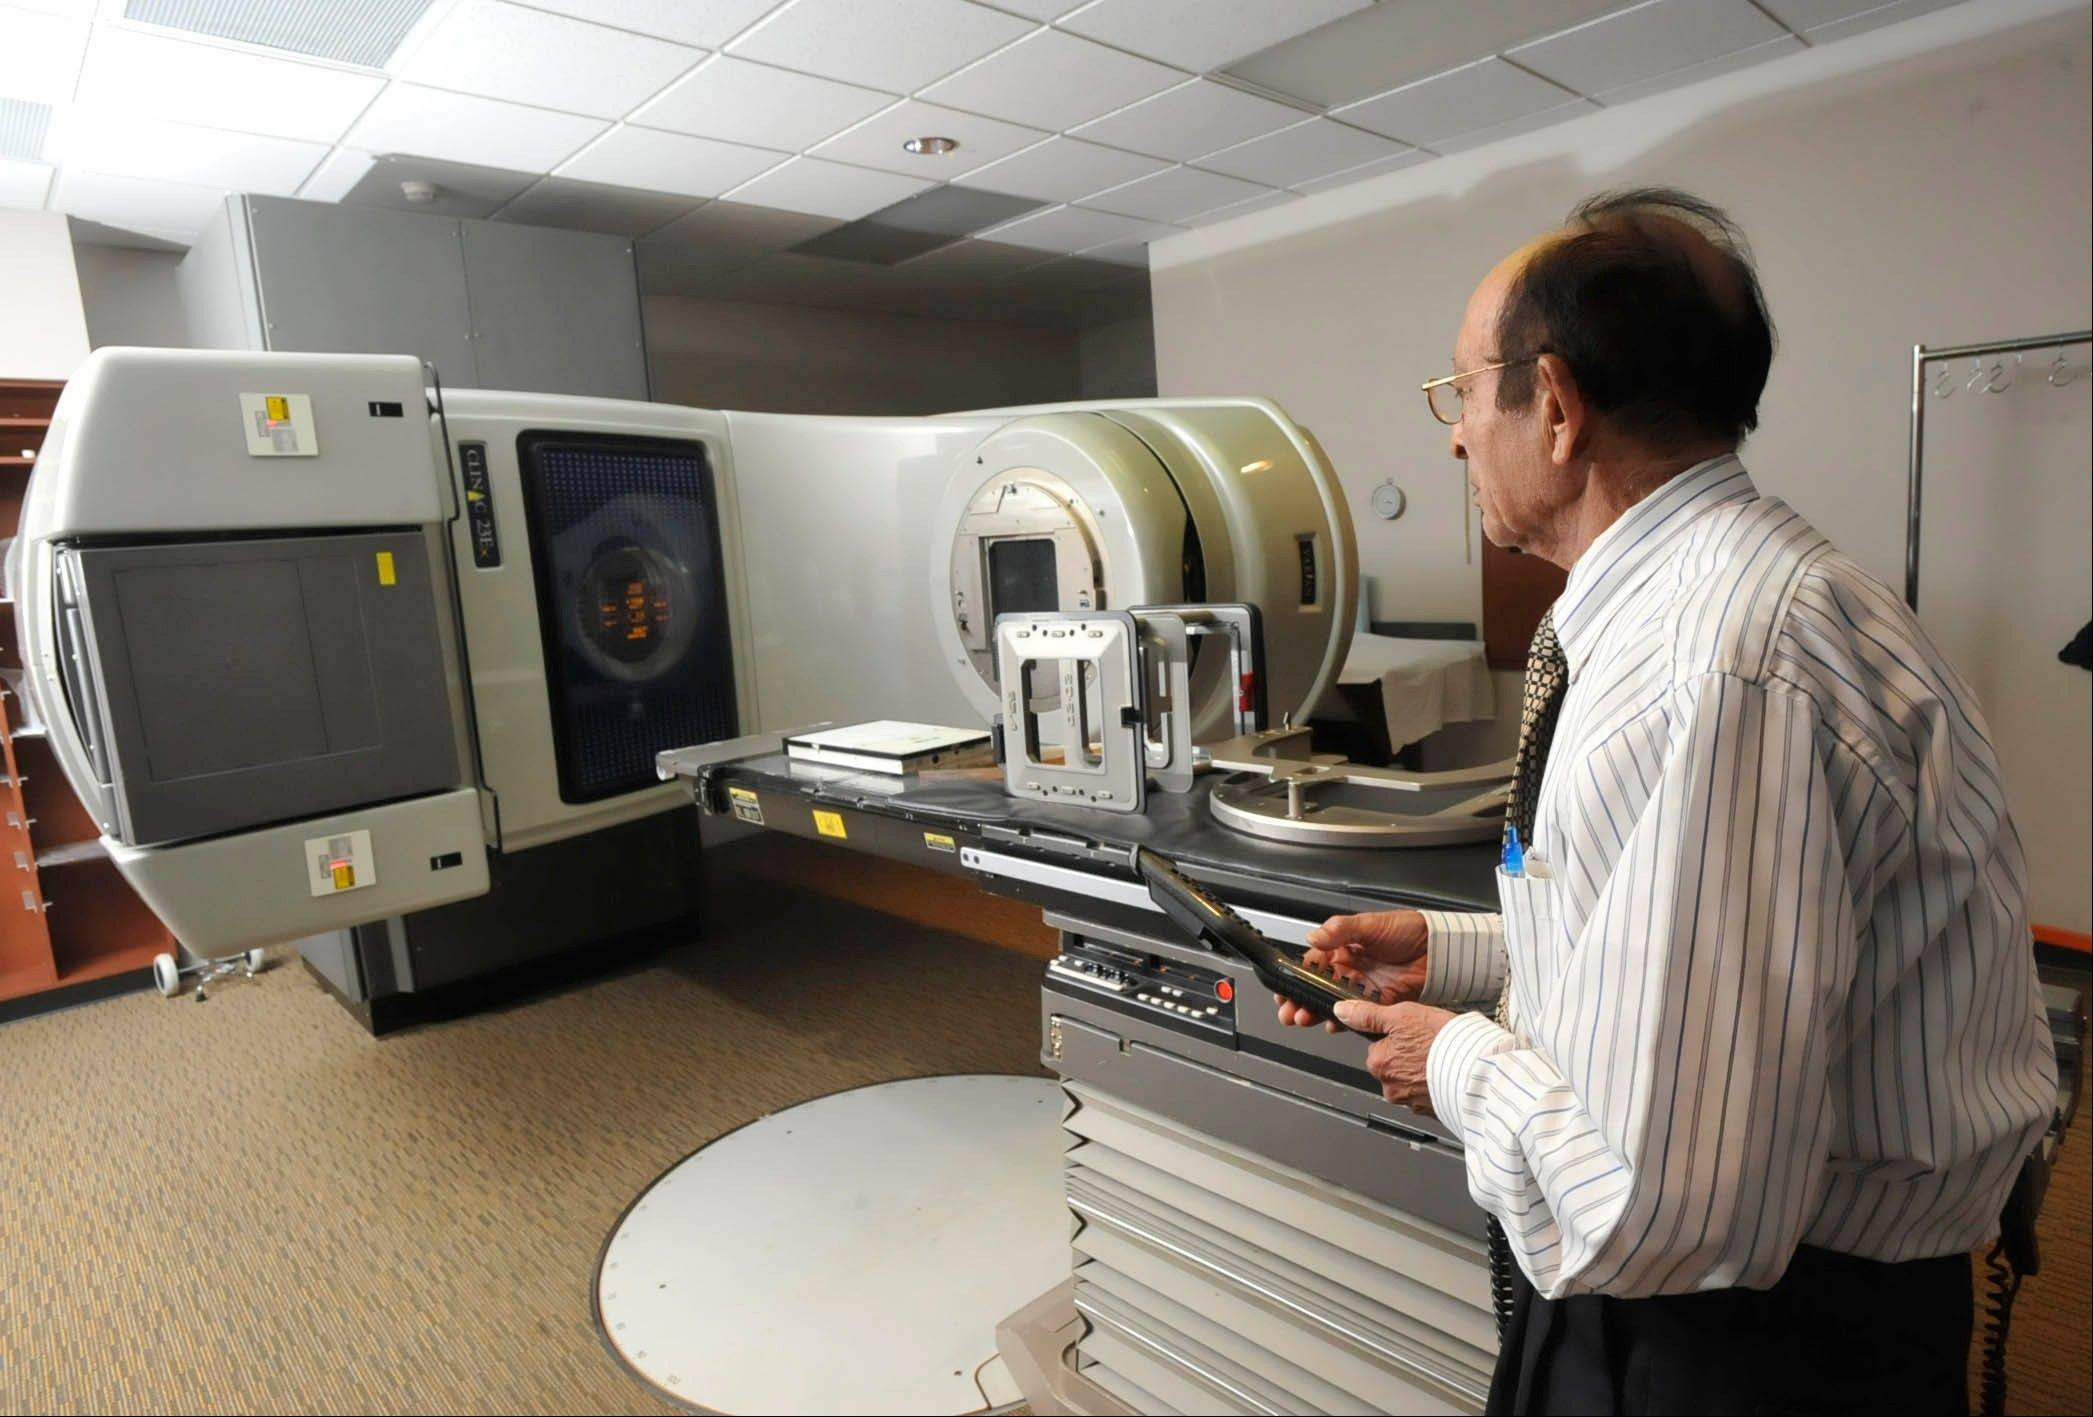 Associated Press/Sept. 19, 2102 A linear accelerator used to treat cancer at a hospital in Johnstown, Pa. Women treated with radiation for breast cancer are more likely to develop heart problems later, even with the lower doses used today, troubling new research suggests.